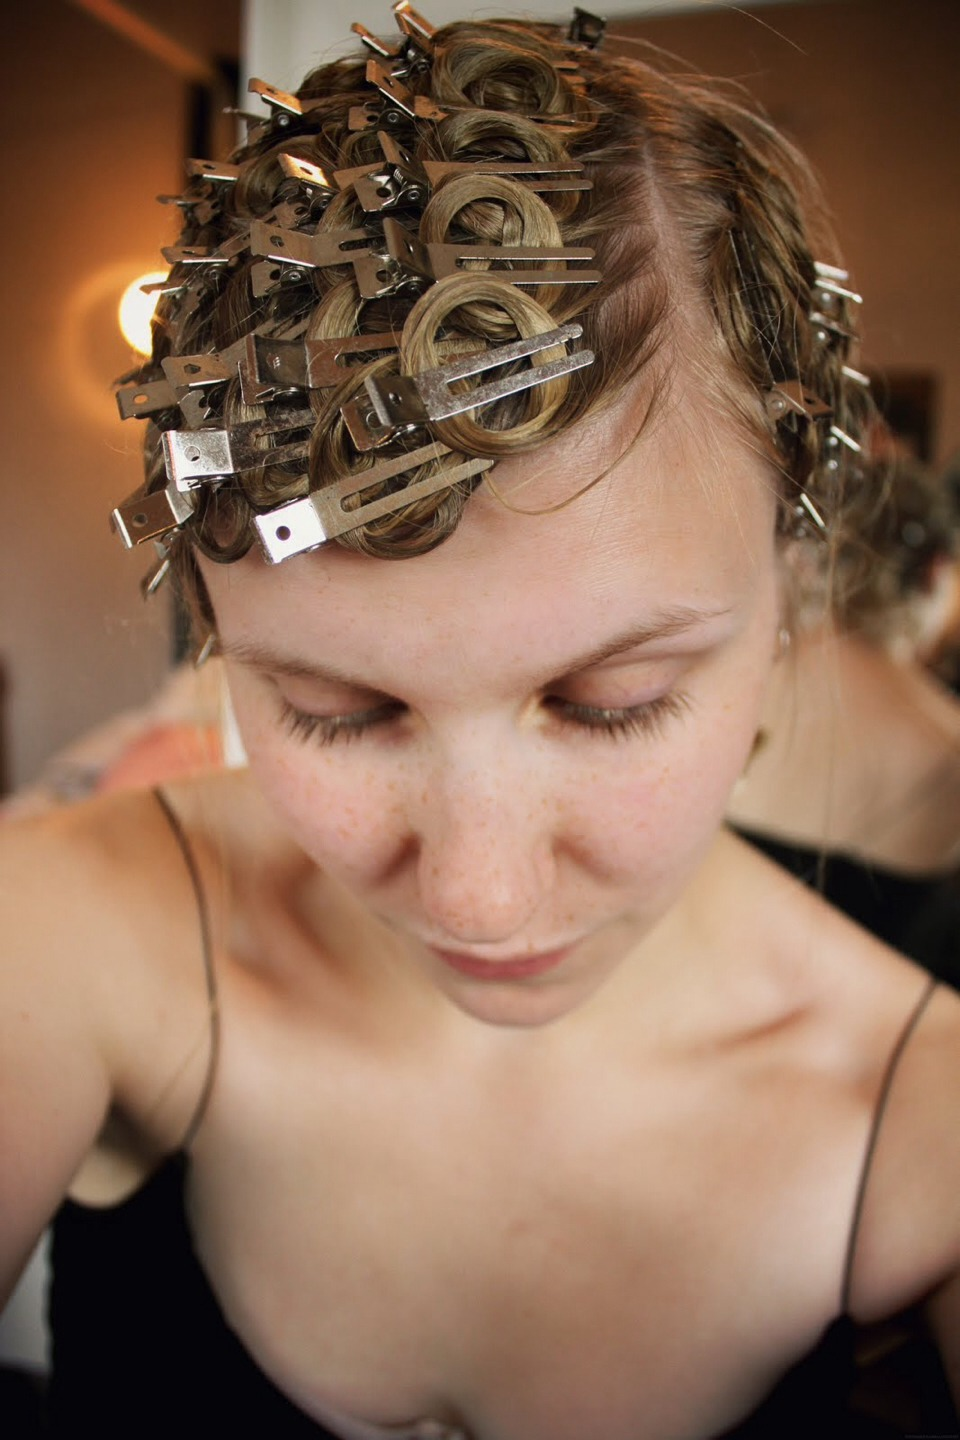 Pin Curl Your Hair For Curls The Next Morning! Wrap Your Hair Into A